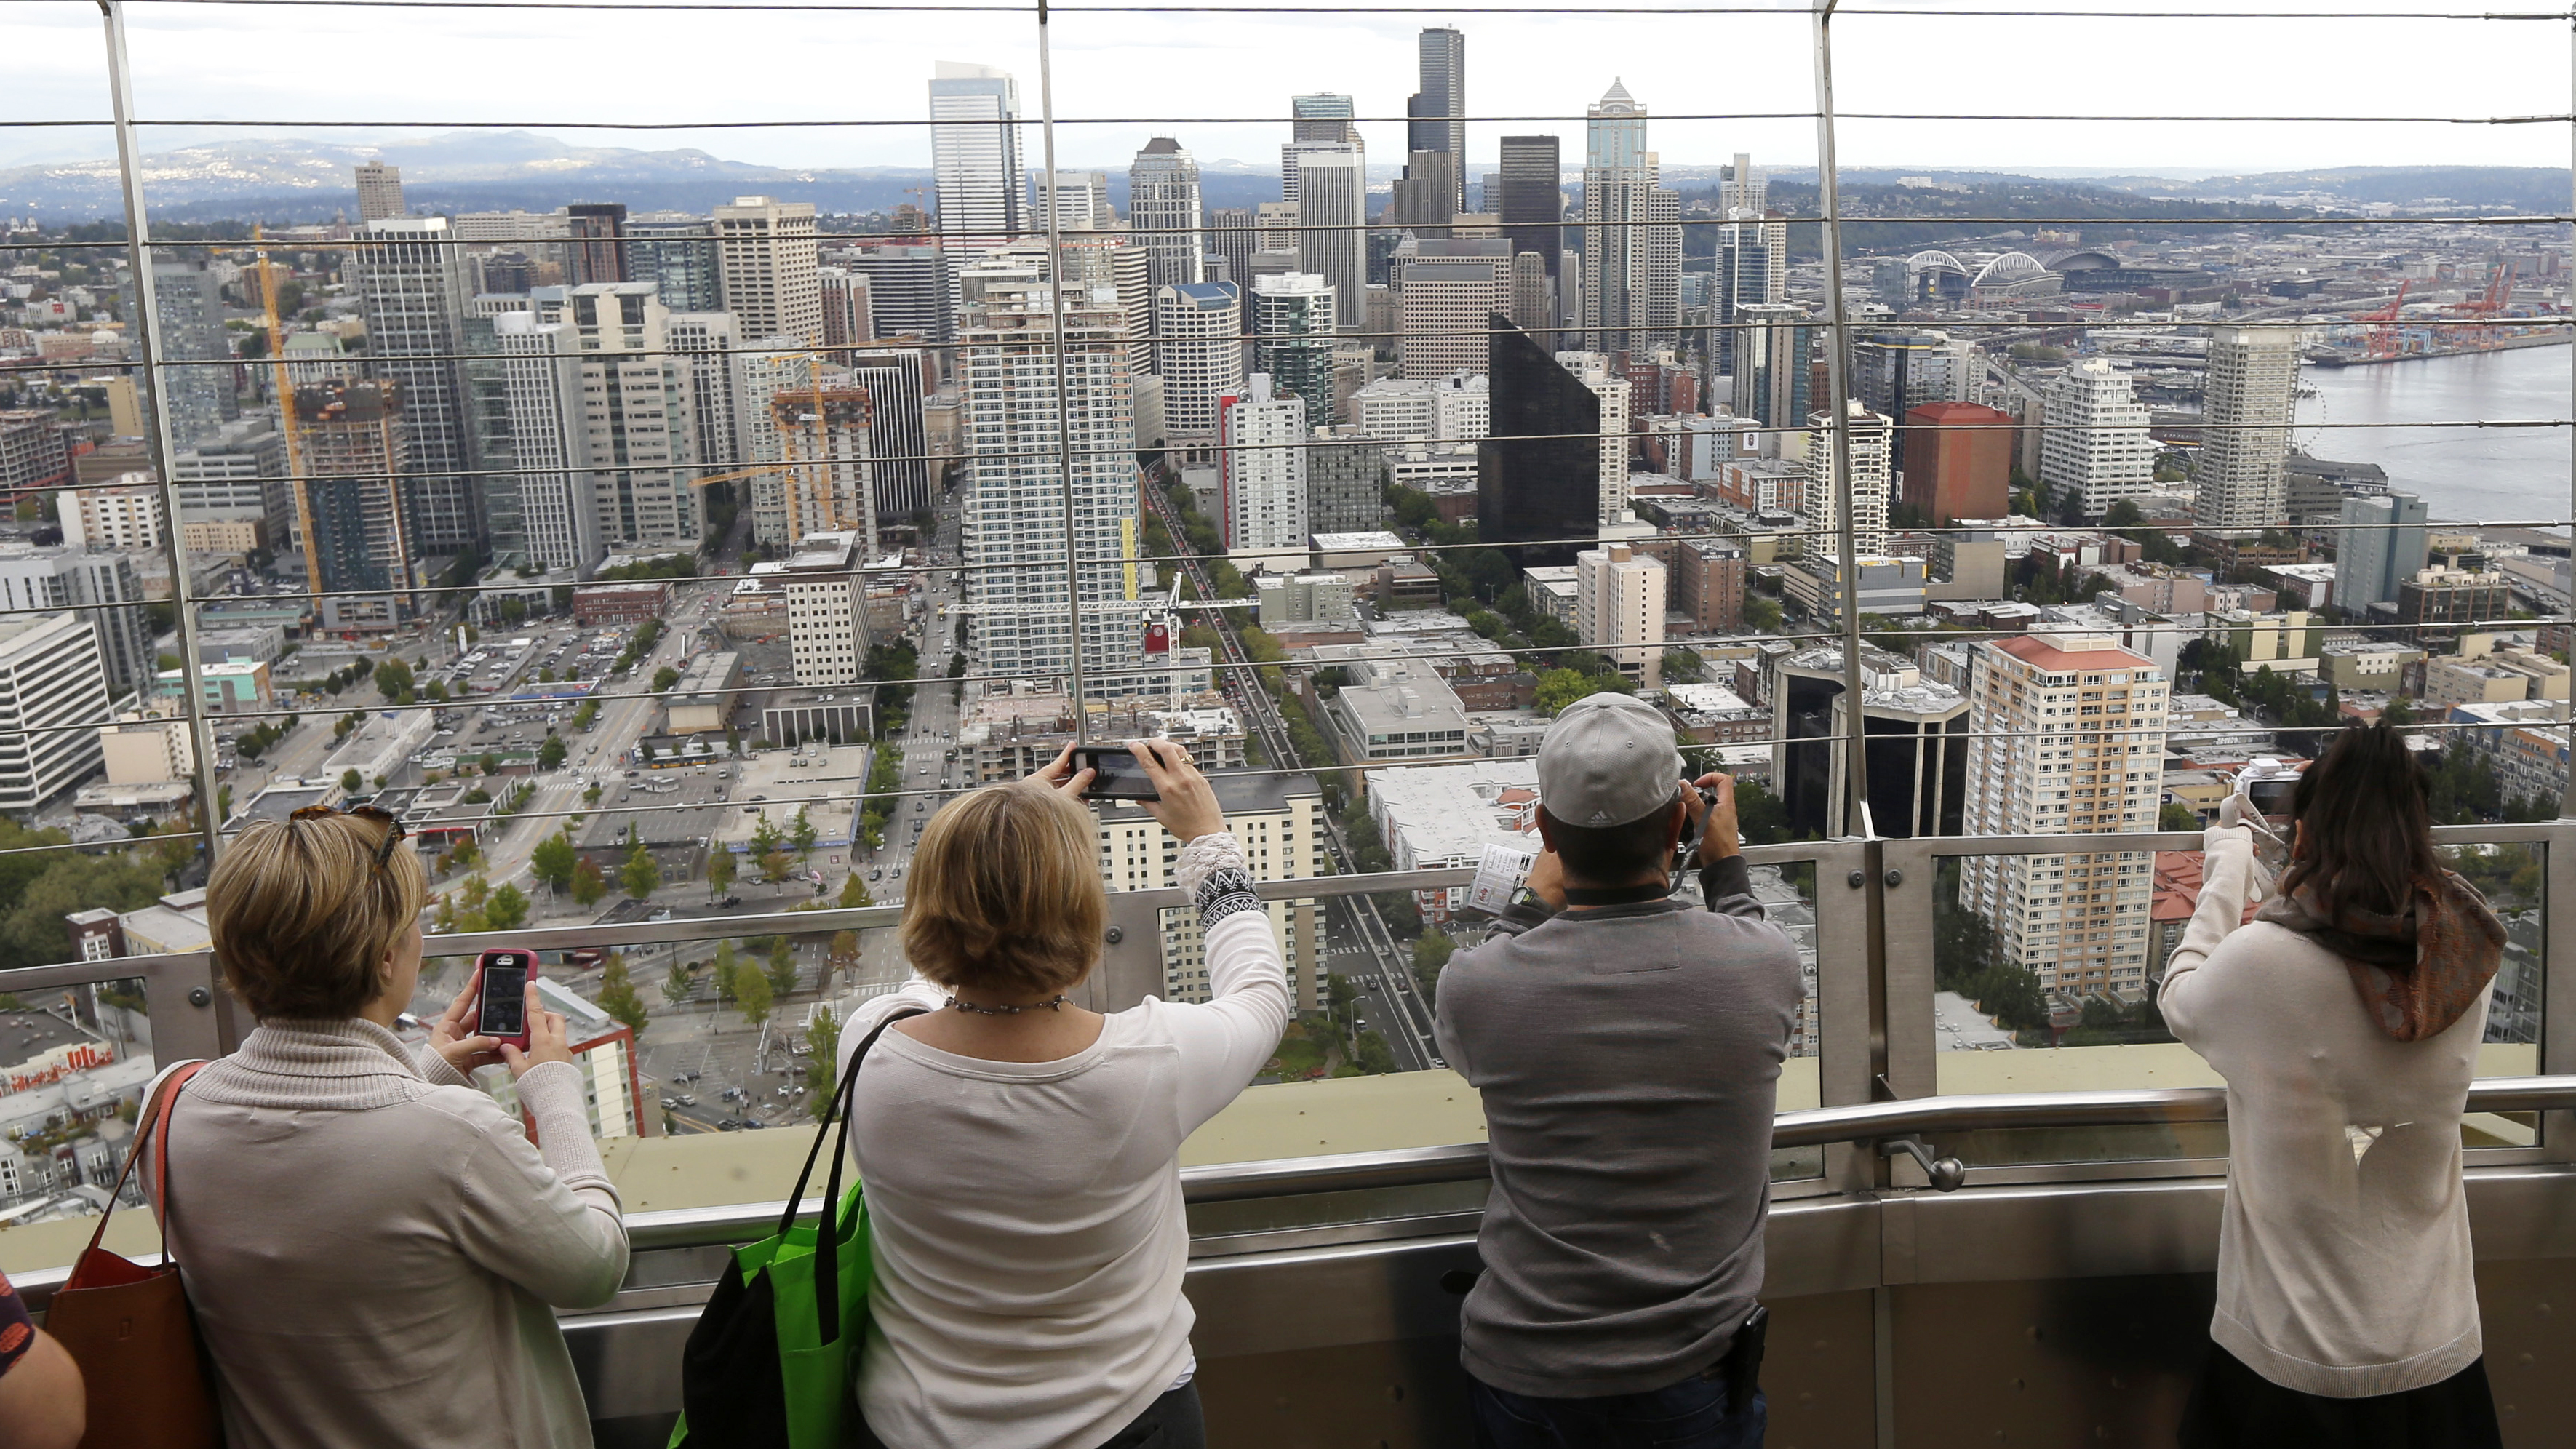 Seattle has adopted an income tax on high earners to address an affordability crisis stemming from the city